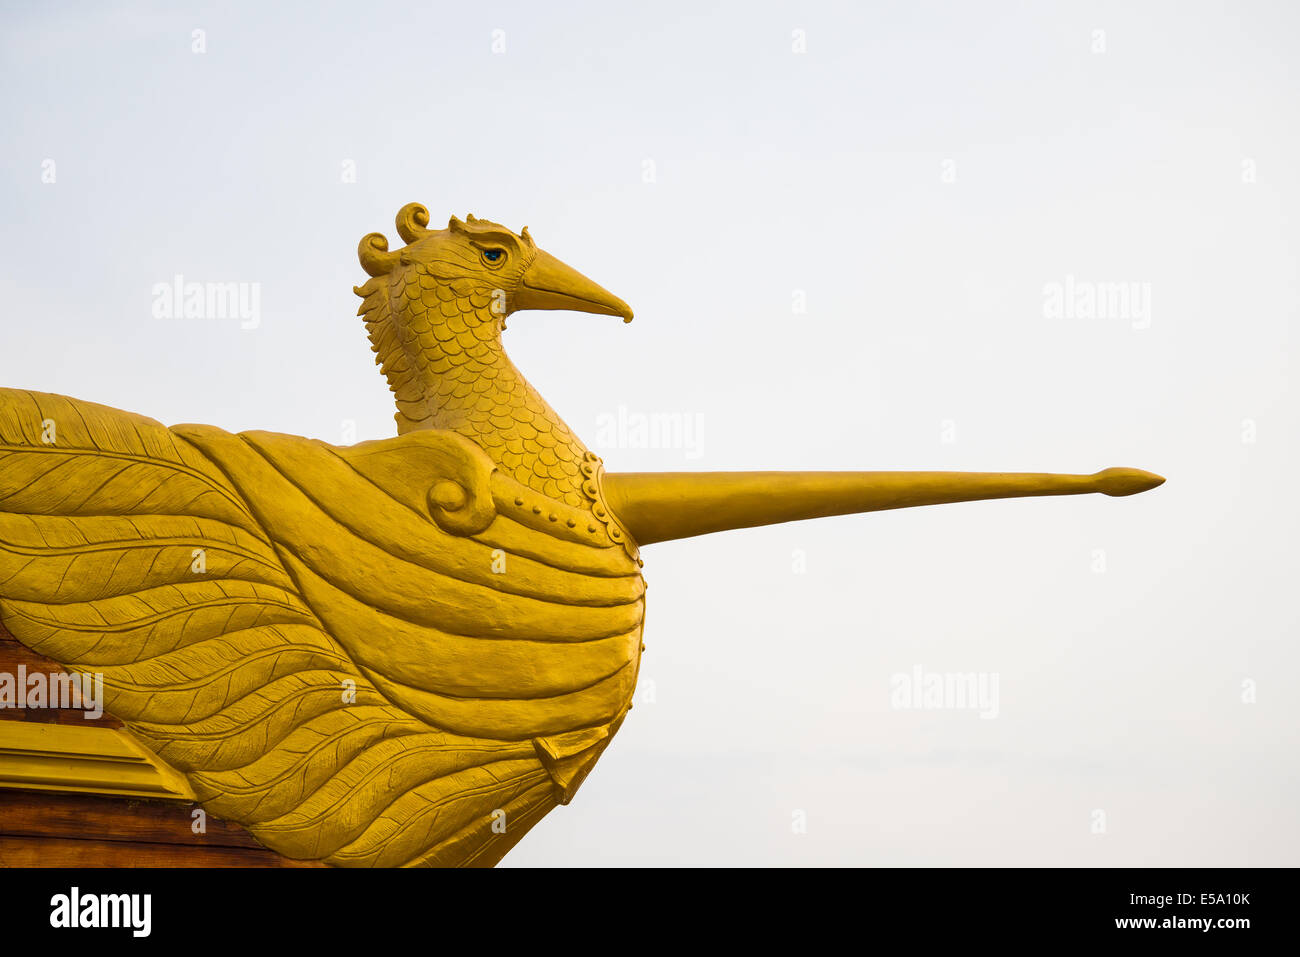 Swan Statue Stock Photos & Swan Statue Stock Images - Alamy